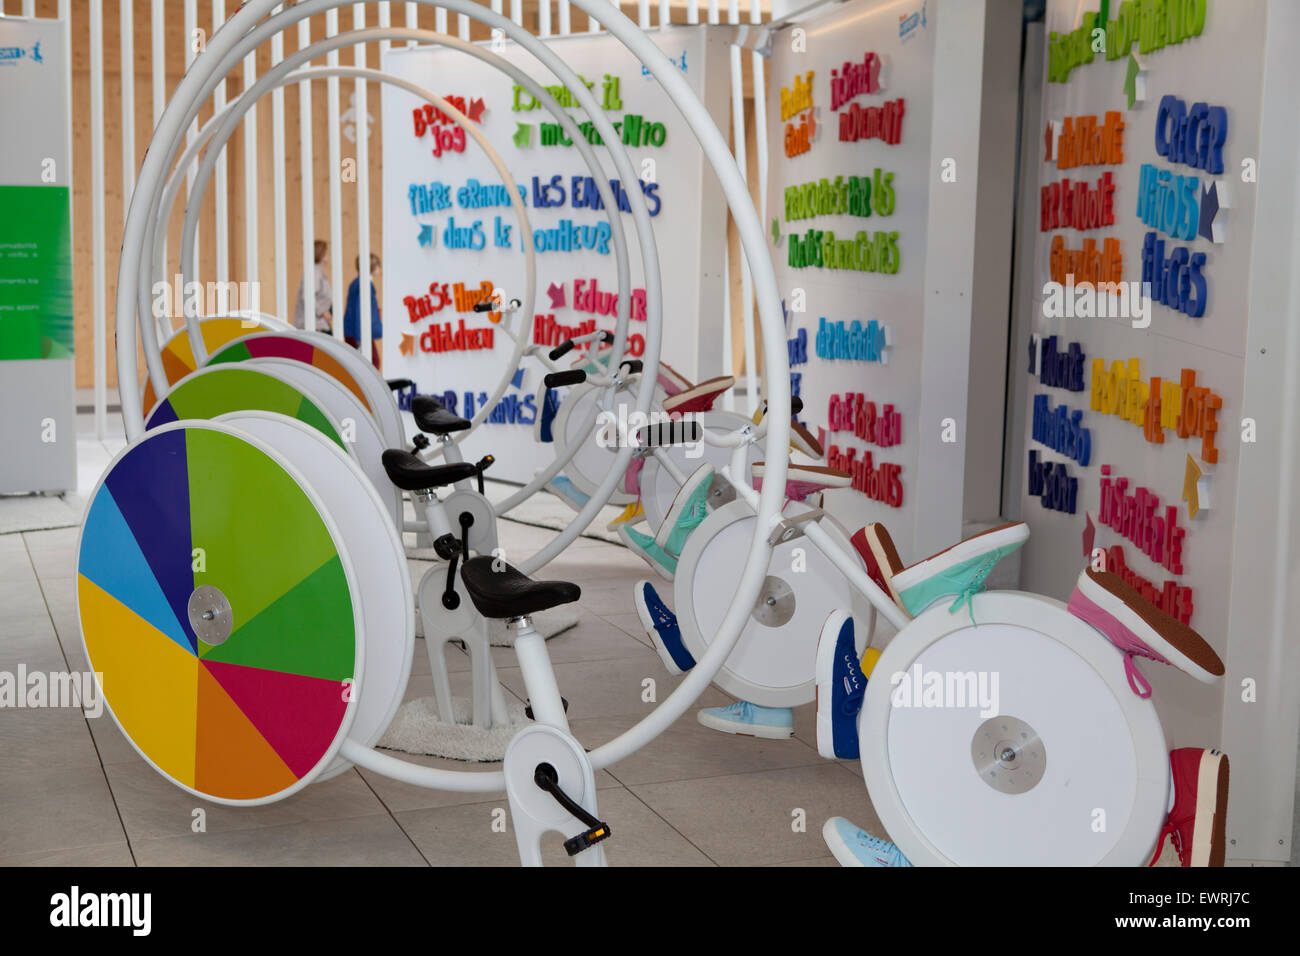 Kids Exhibition Booth : Kinder booth at expo milan with activities for young kids